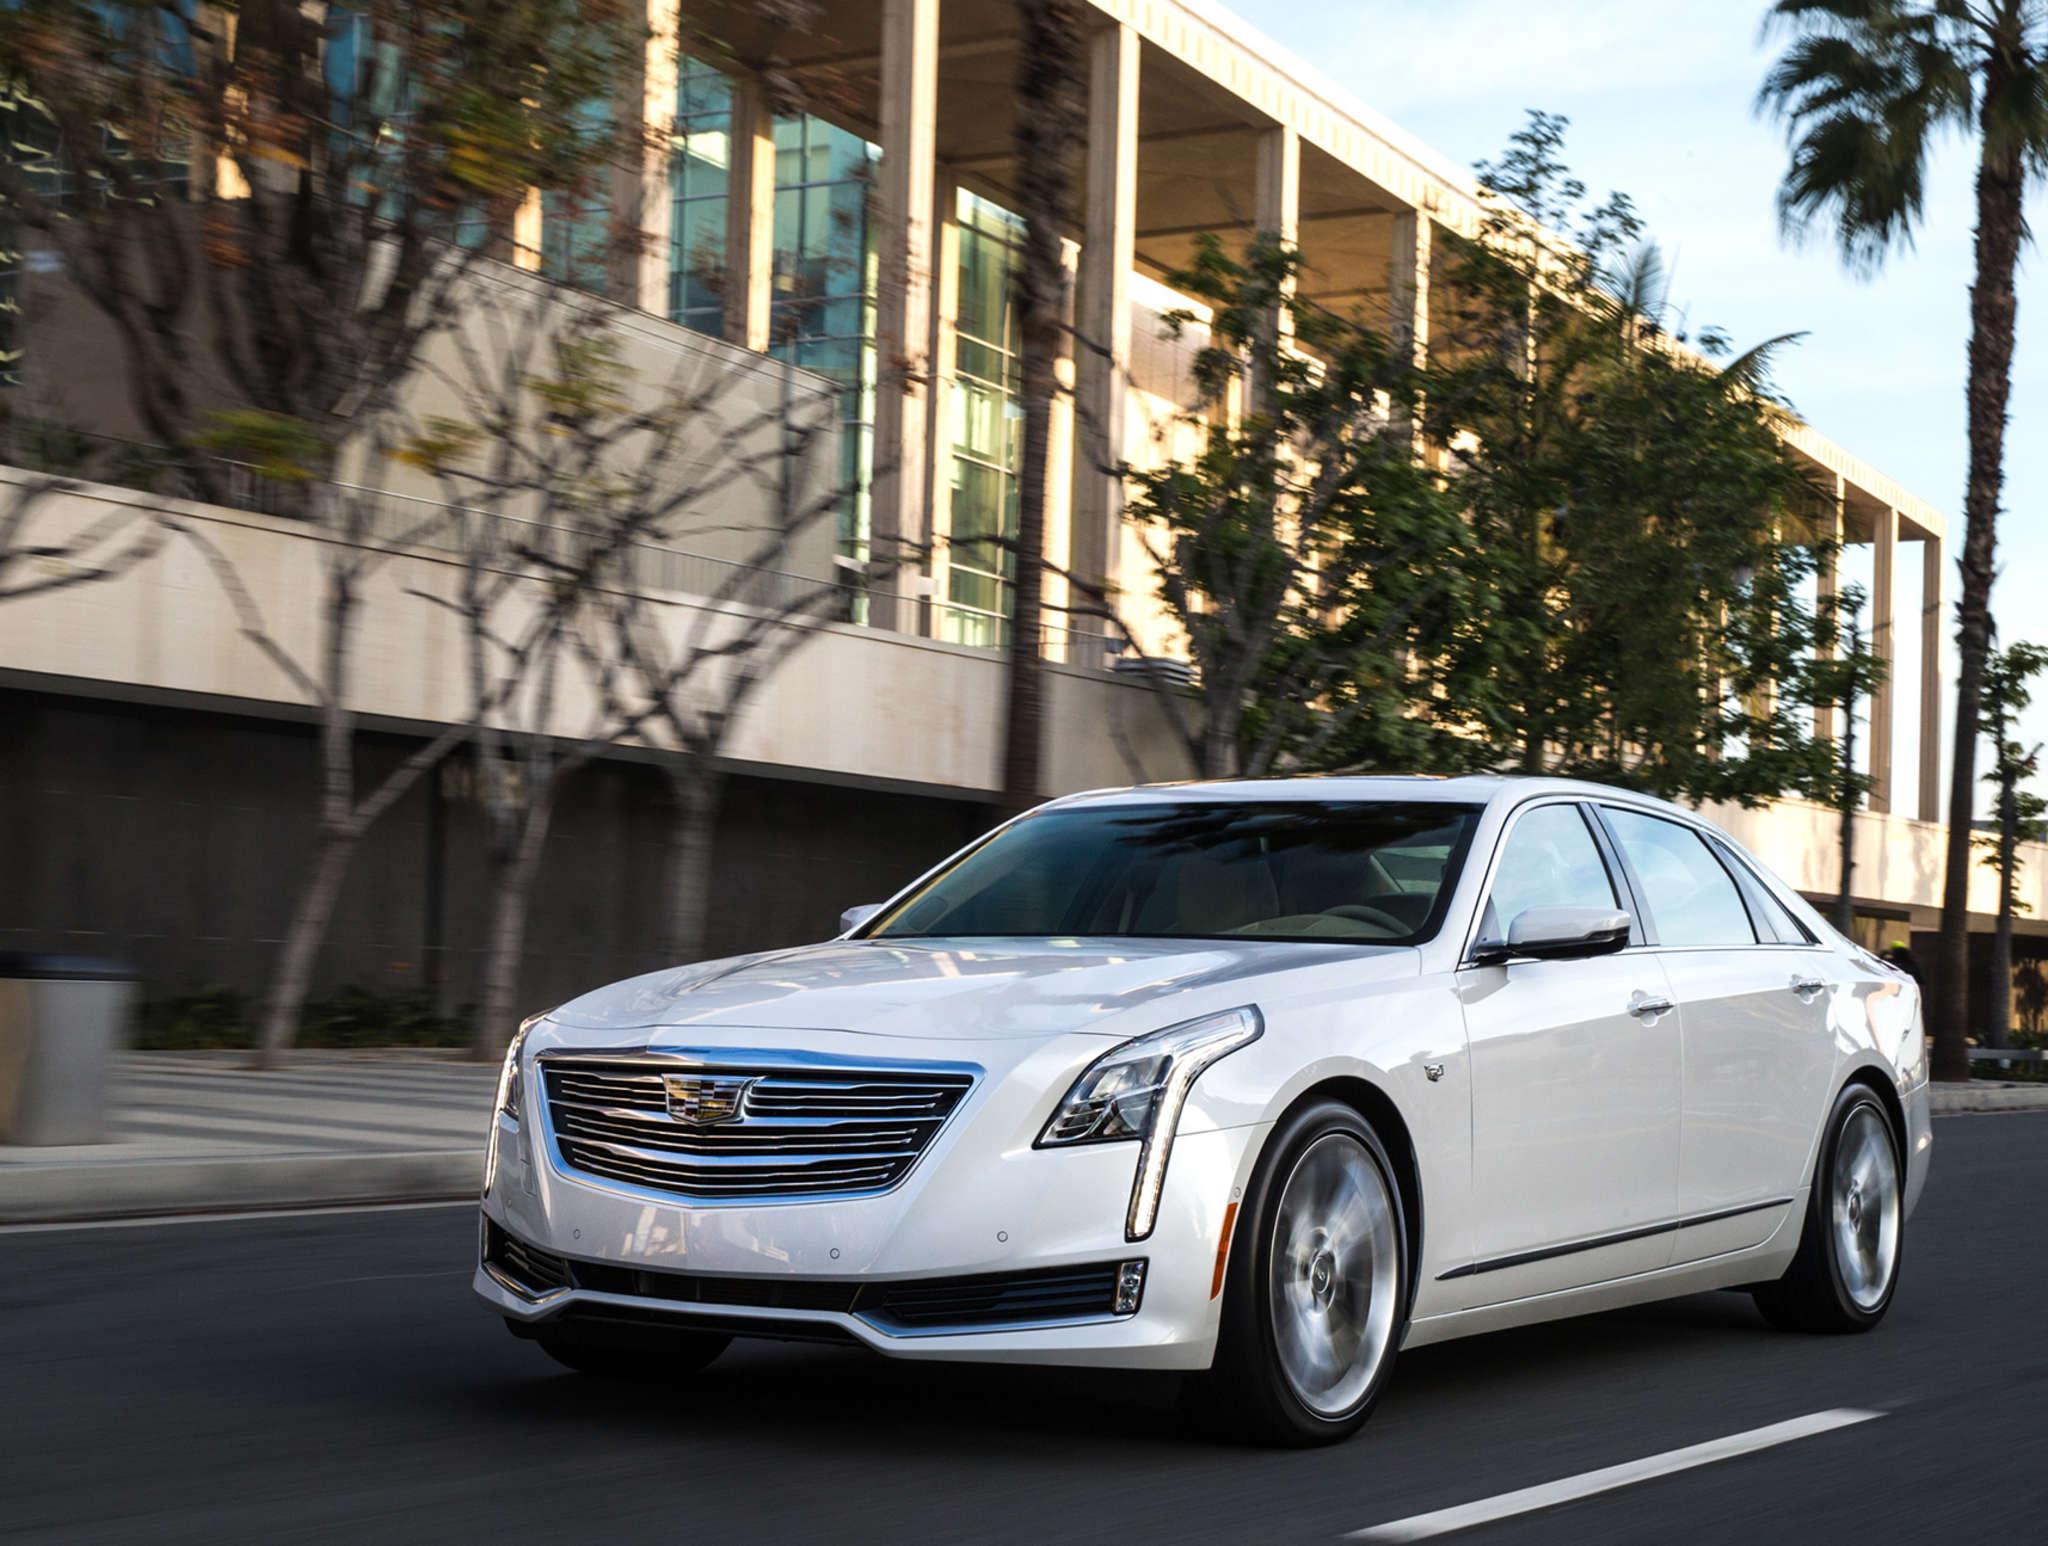 The CT6 is Cadillac´s new luxury sedan, offering Cadillac spaciousness and comfort with some unusual new features.